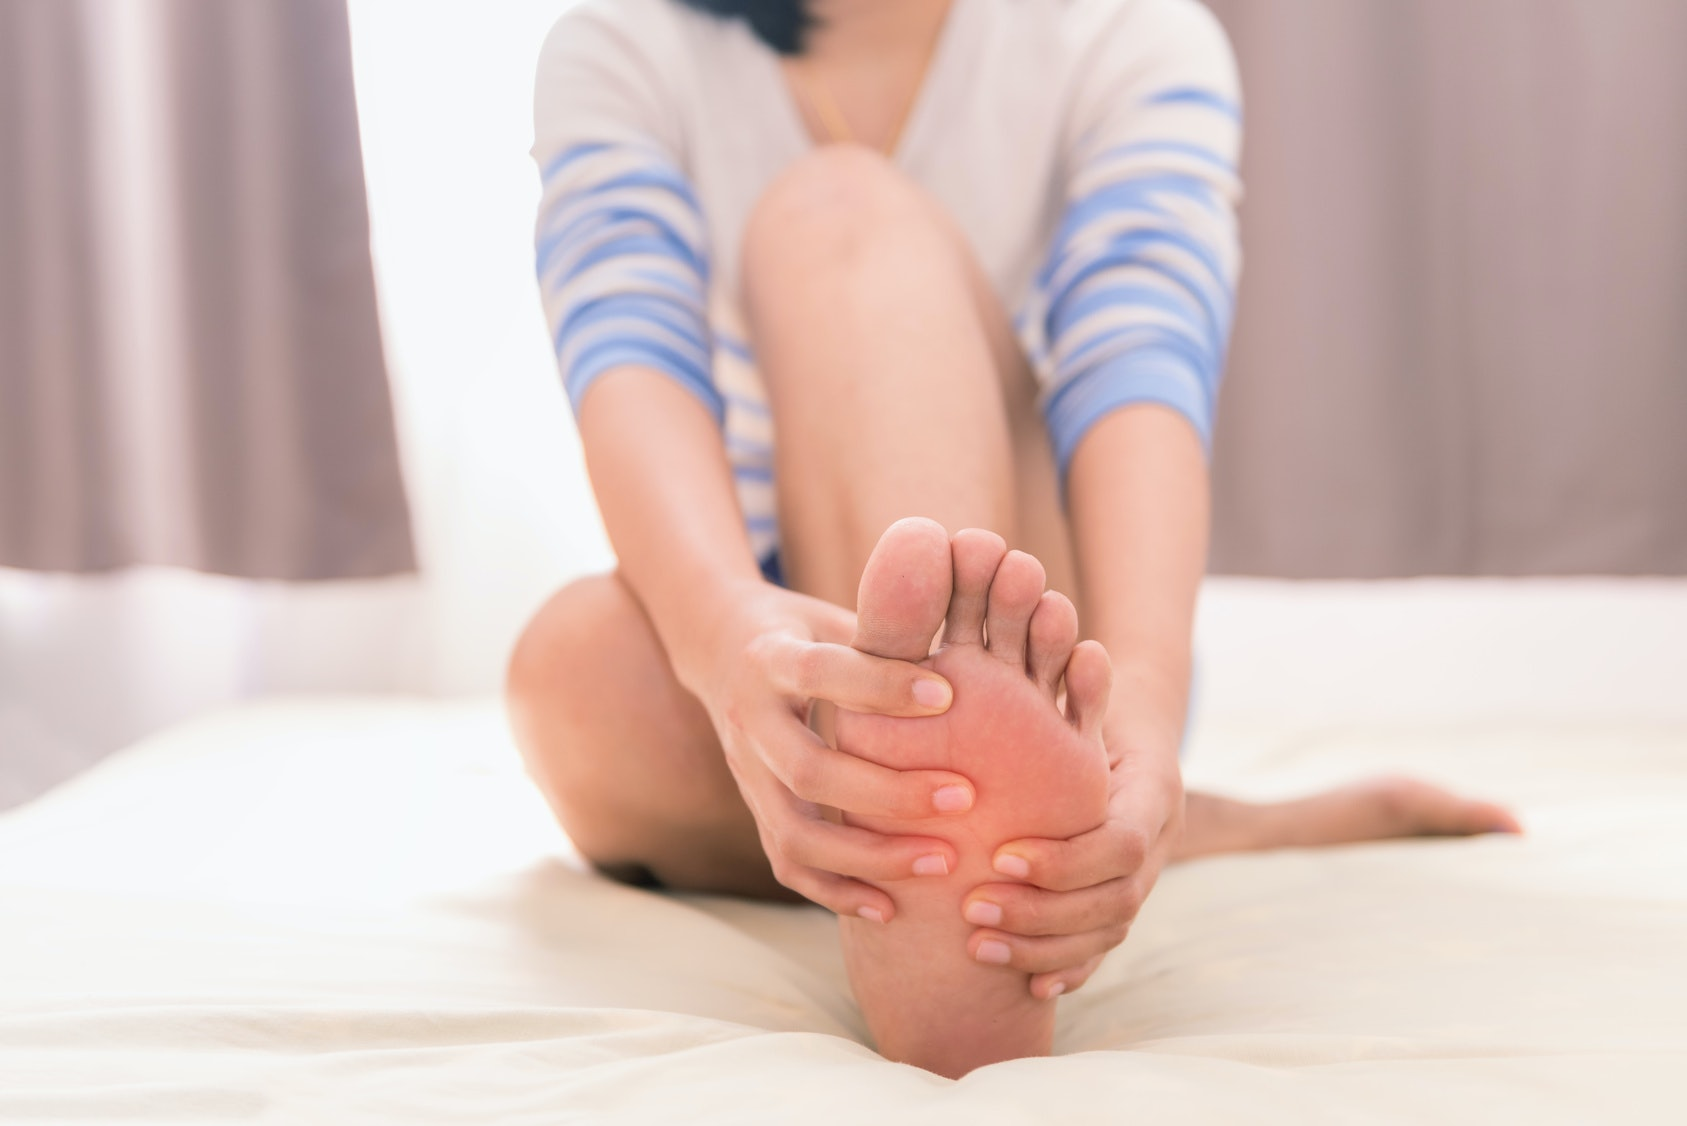 7 Things Your Feet Reveal About Your Health According To Eastern